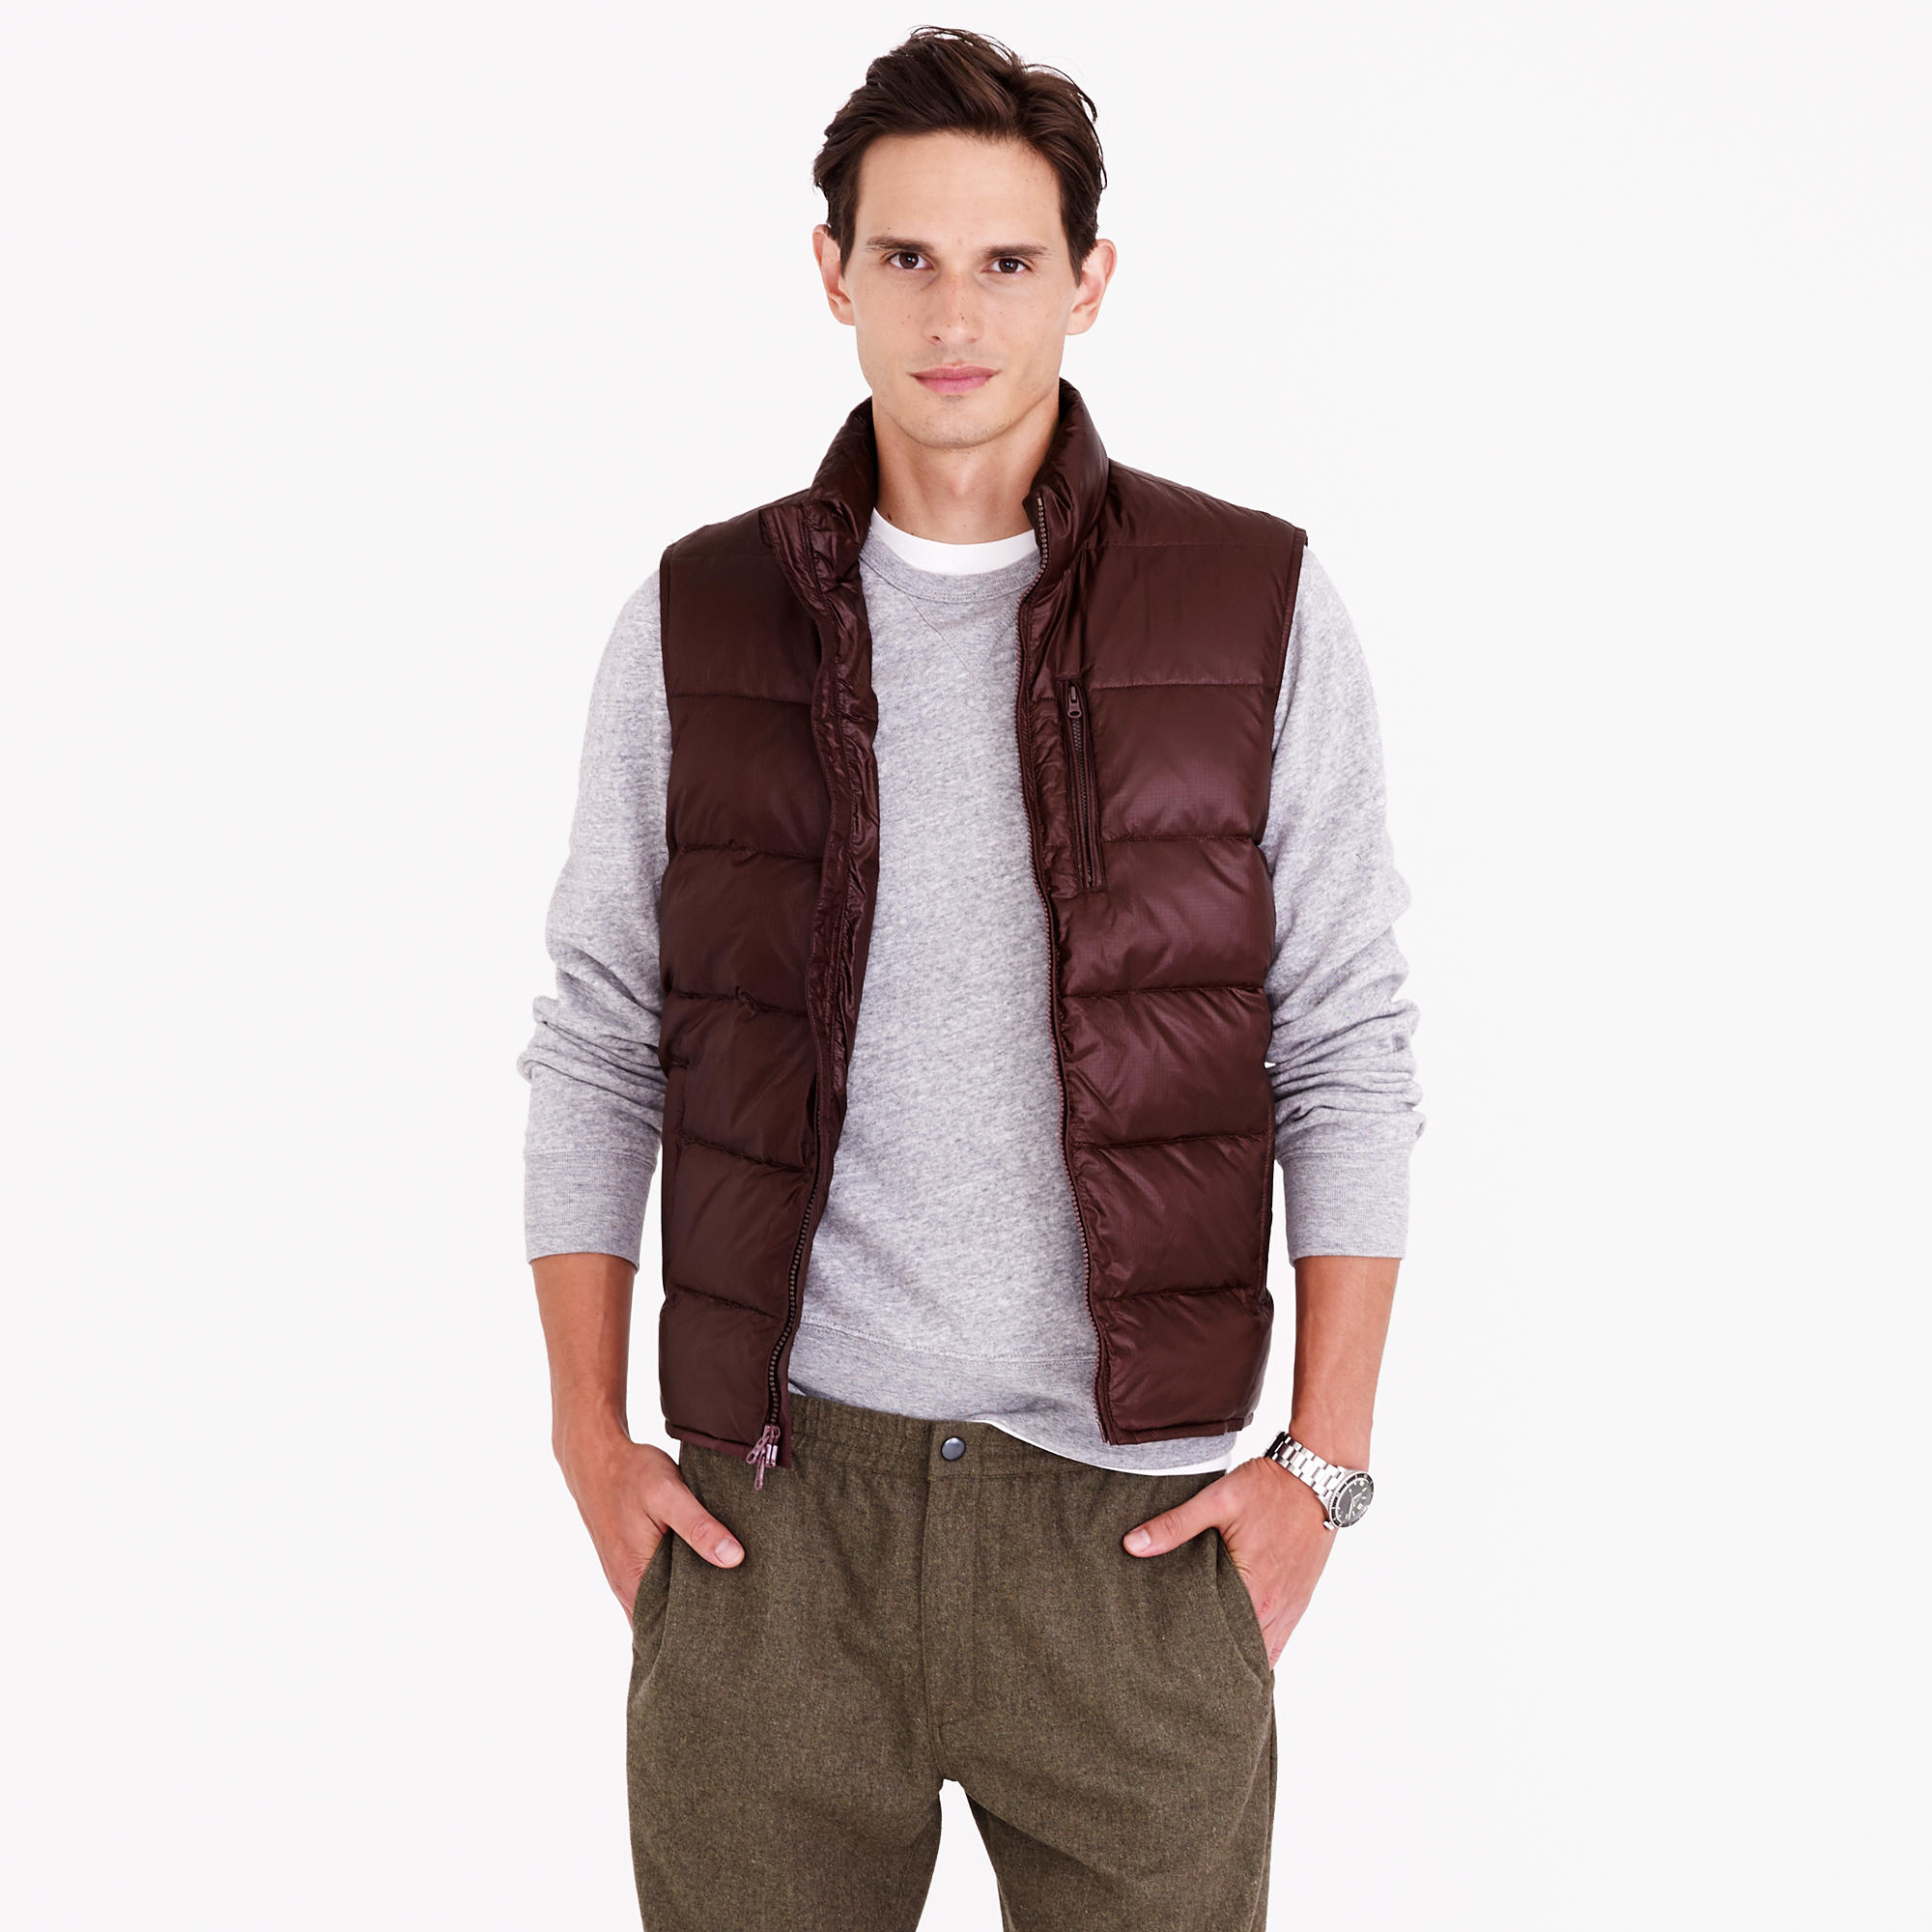 Mens Puffer Vest Shop the Latest Puffer Vest Men. A mens puffer vest isn't just for keeping out the cold. When you're shopping for a puffer vest on Differio, you're going to find only the coolest styles.